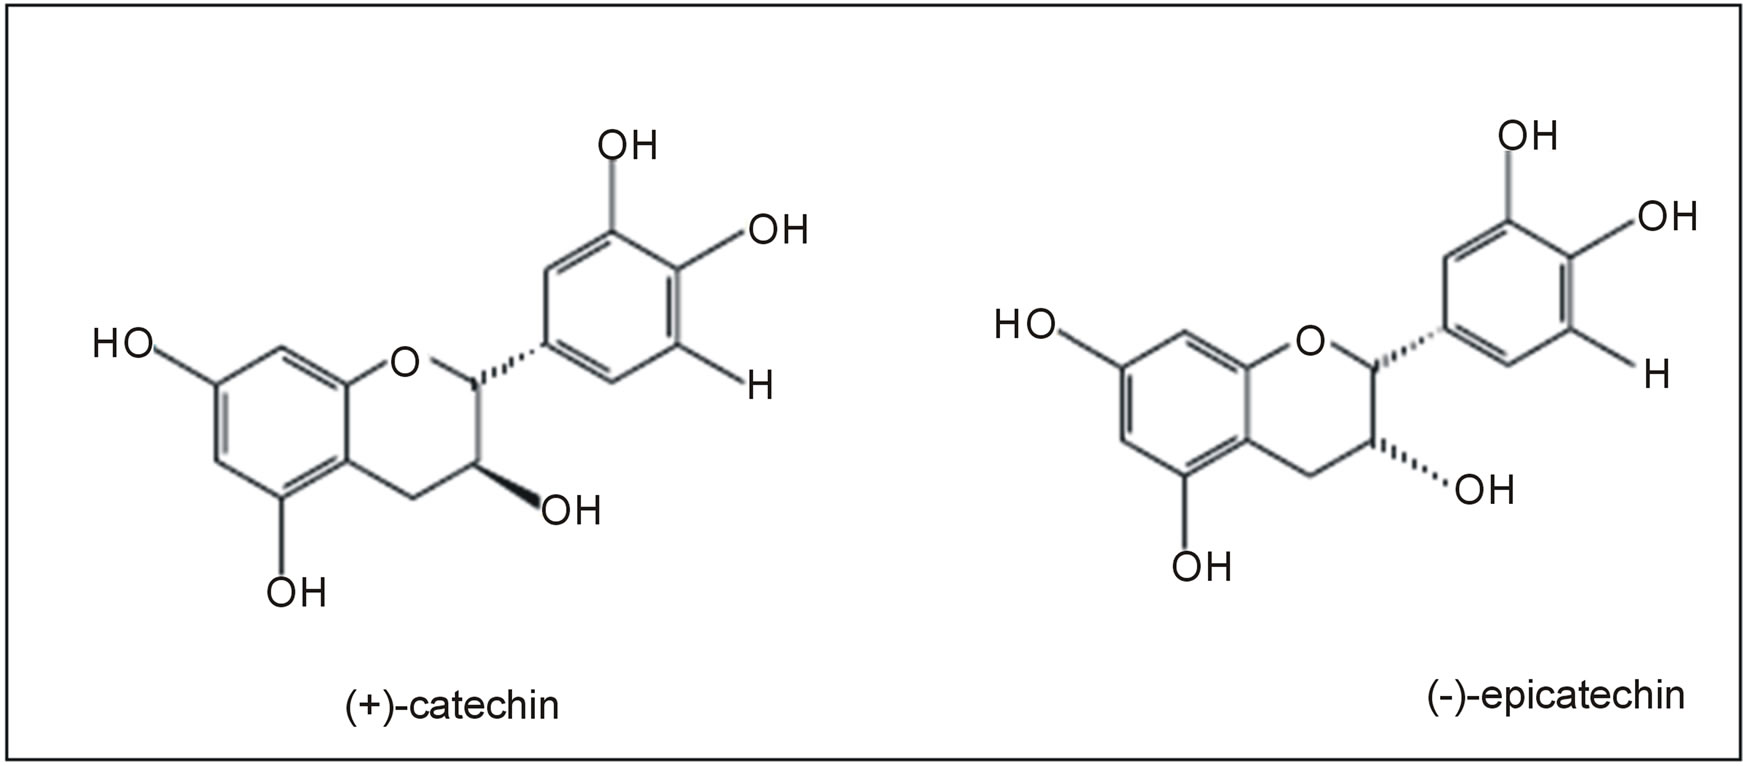 Catechin And Epicatechin Contents In Wines Obtained From